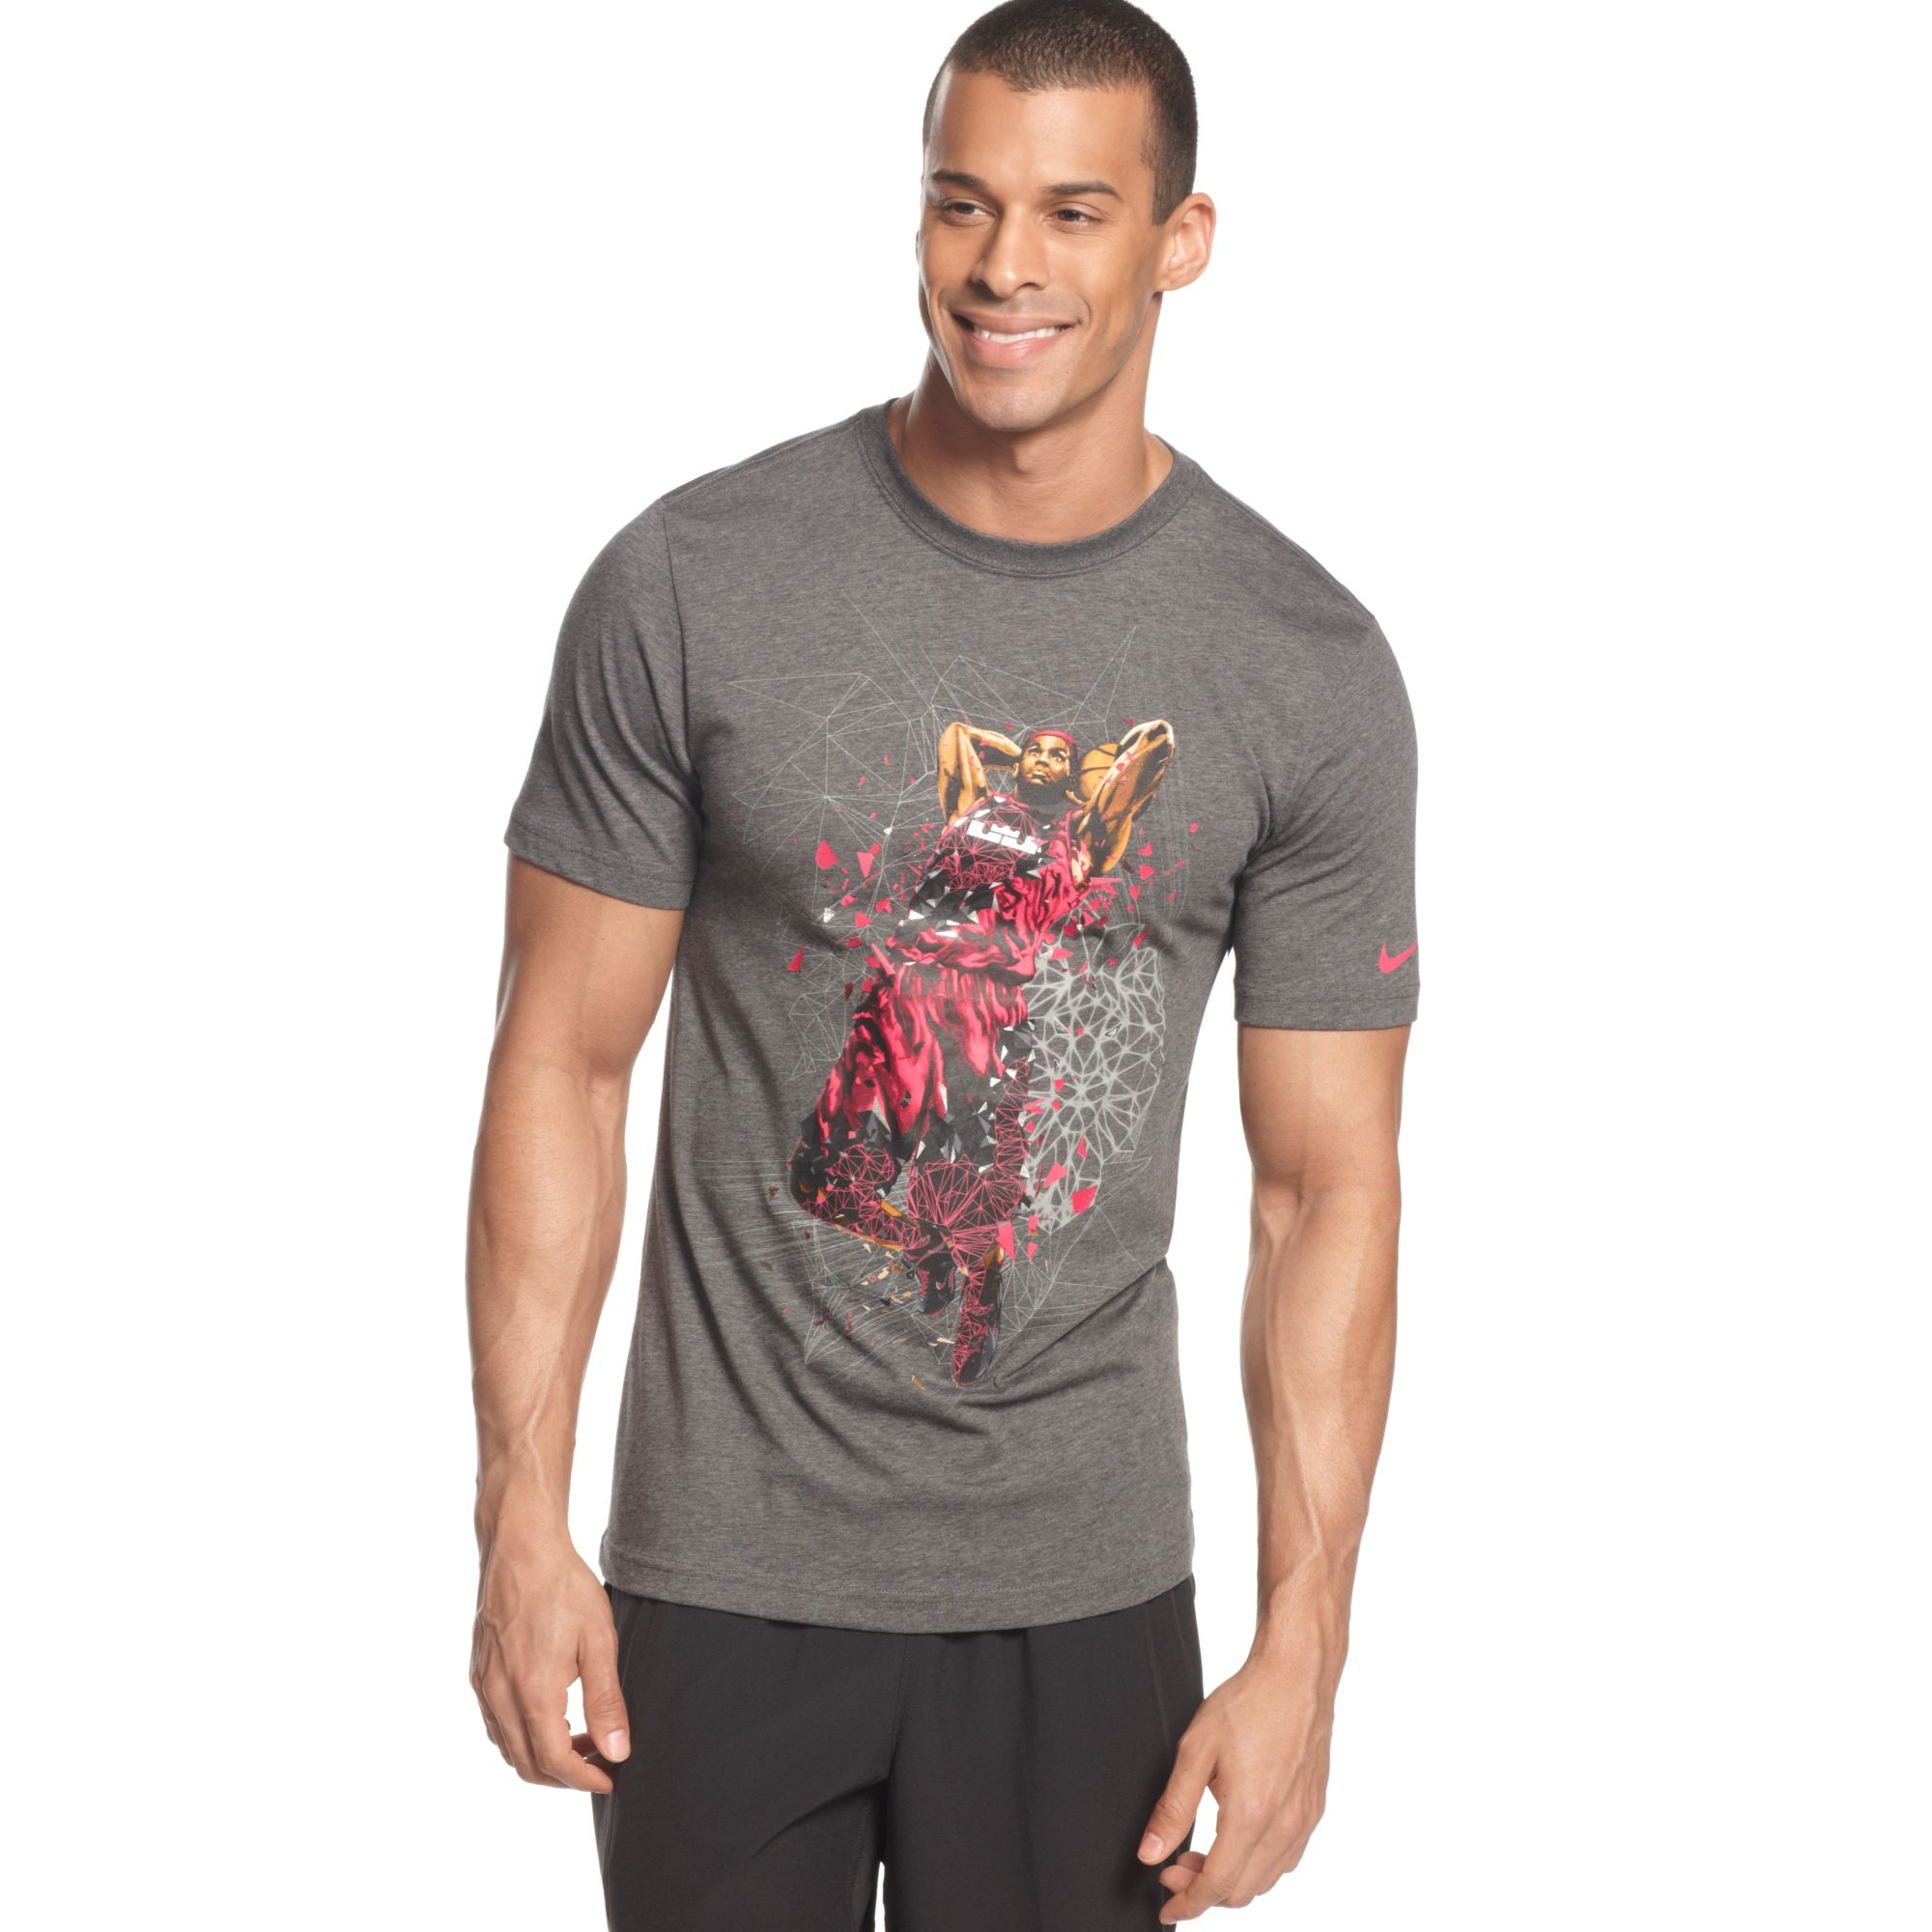 Nike lebron remaster short sleeve t shirt in gray for men for Lebron shirts for sale